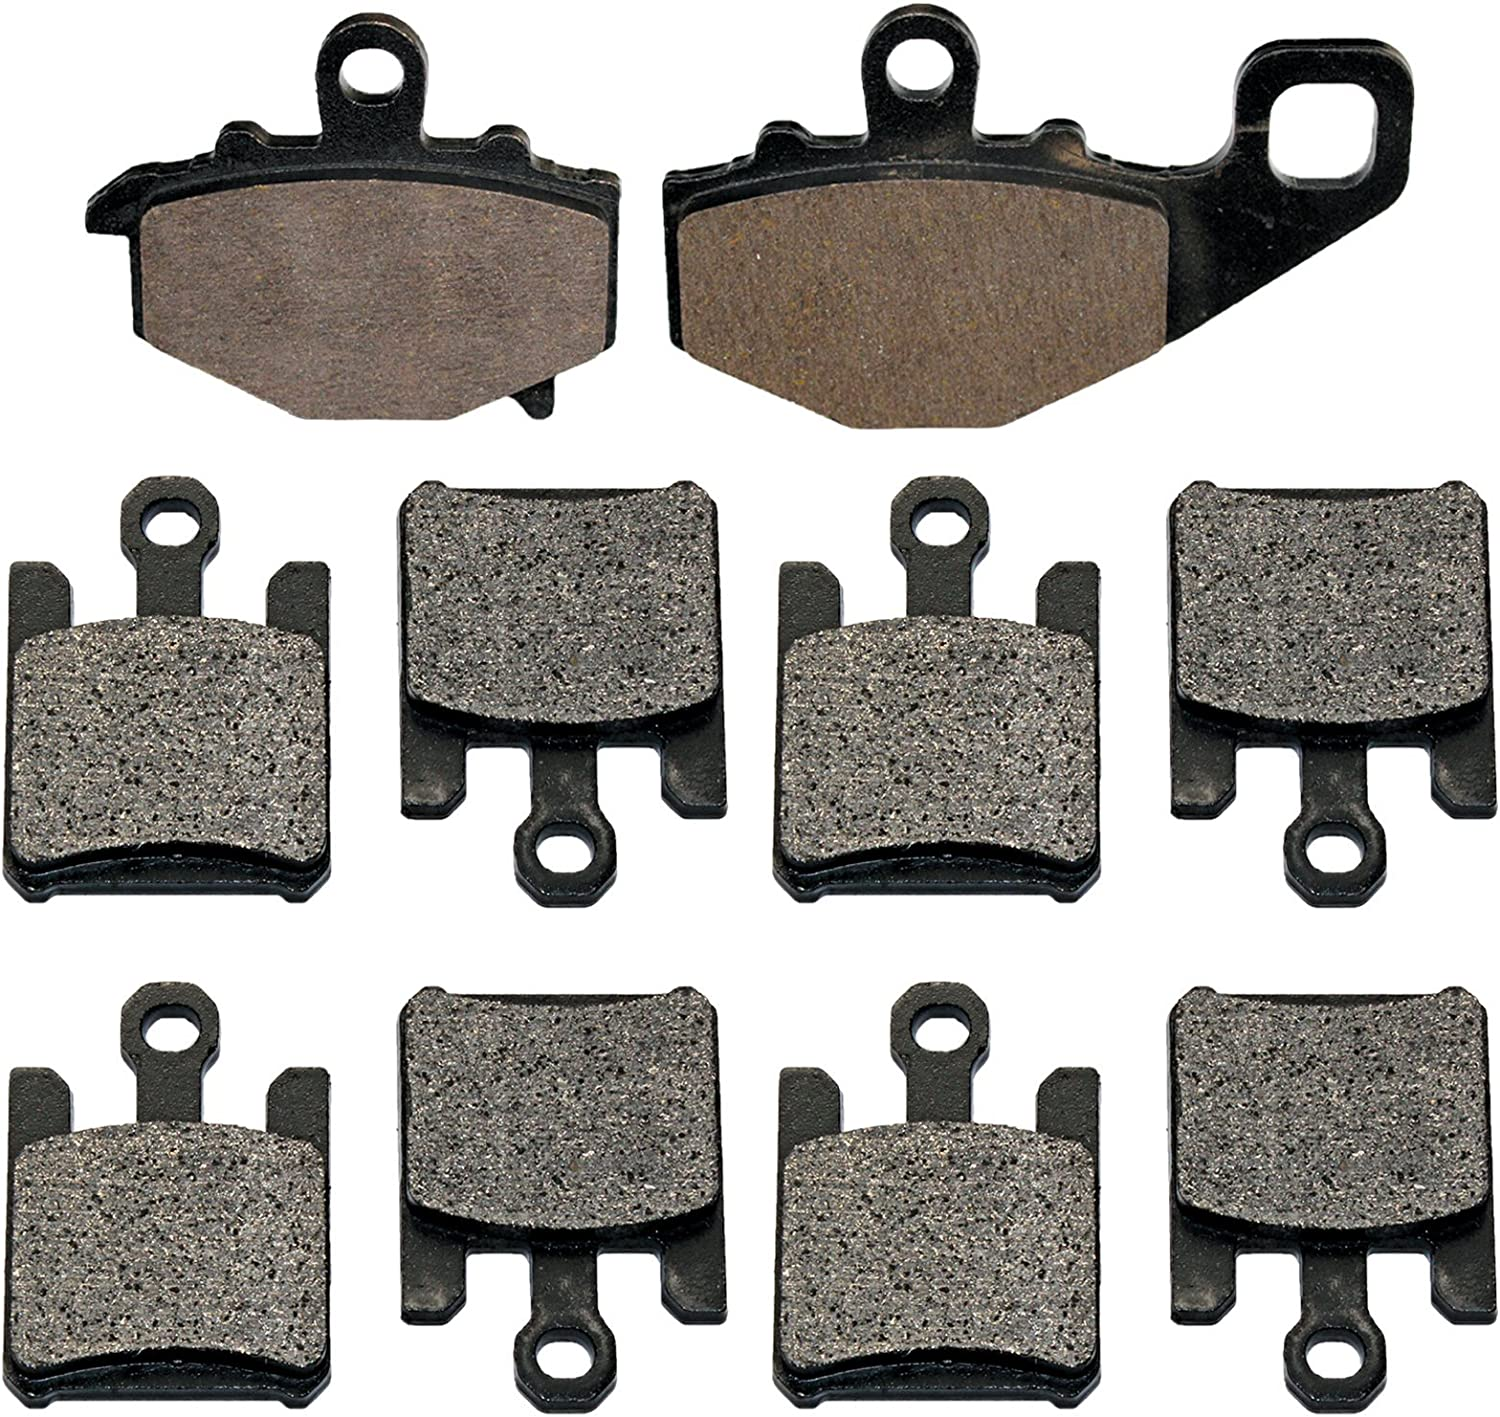 Caltric Front /& Rear Brake Pads Compatible With Kawasaki Zx6R Zx-6R Ninja Zx636 2003-2006